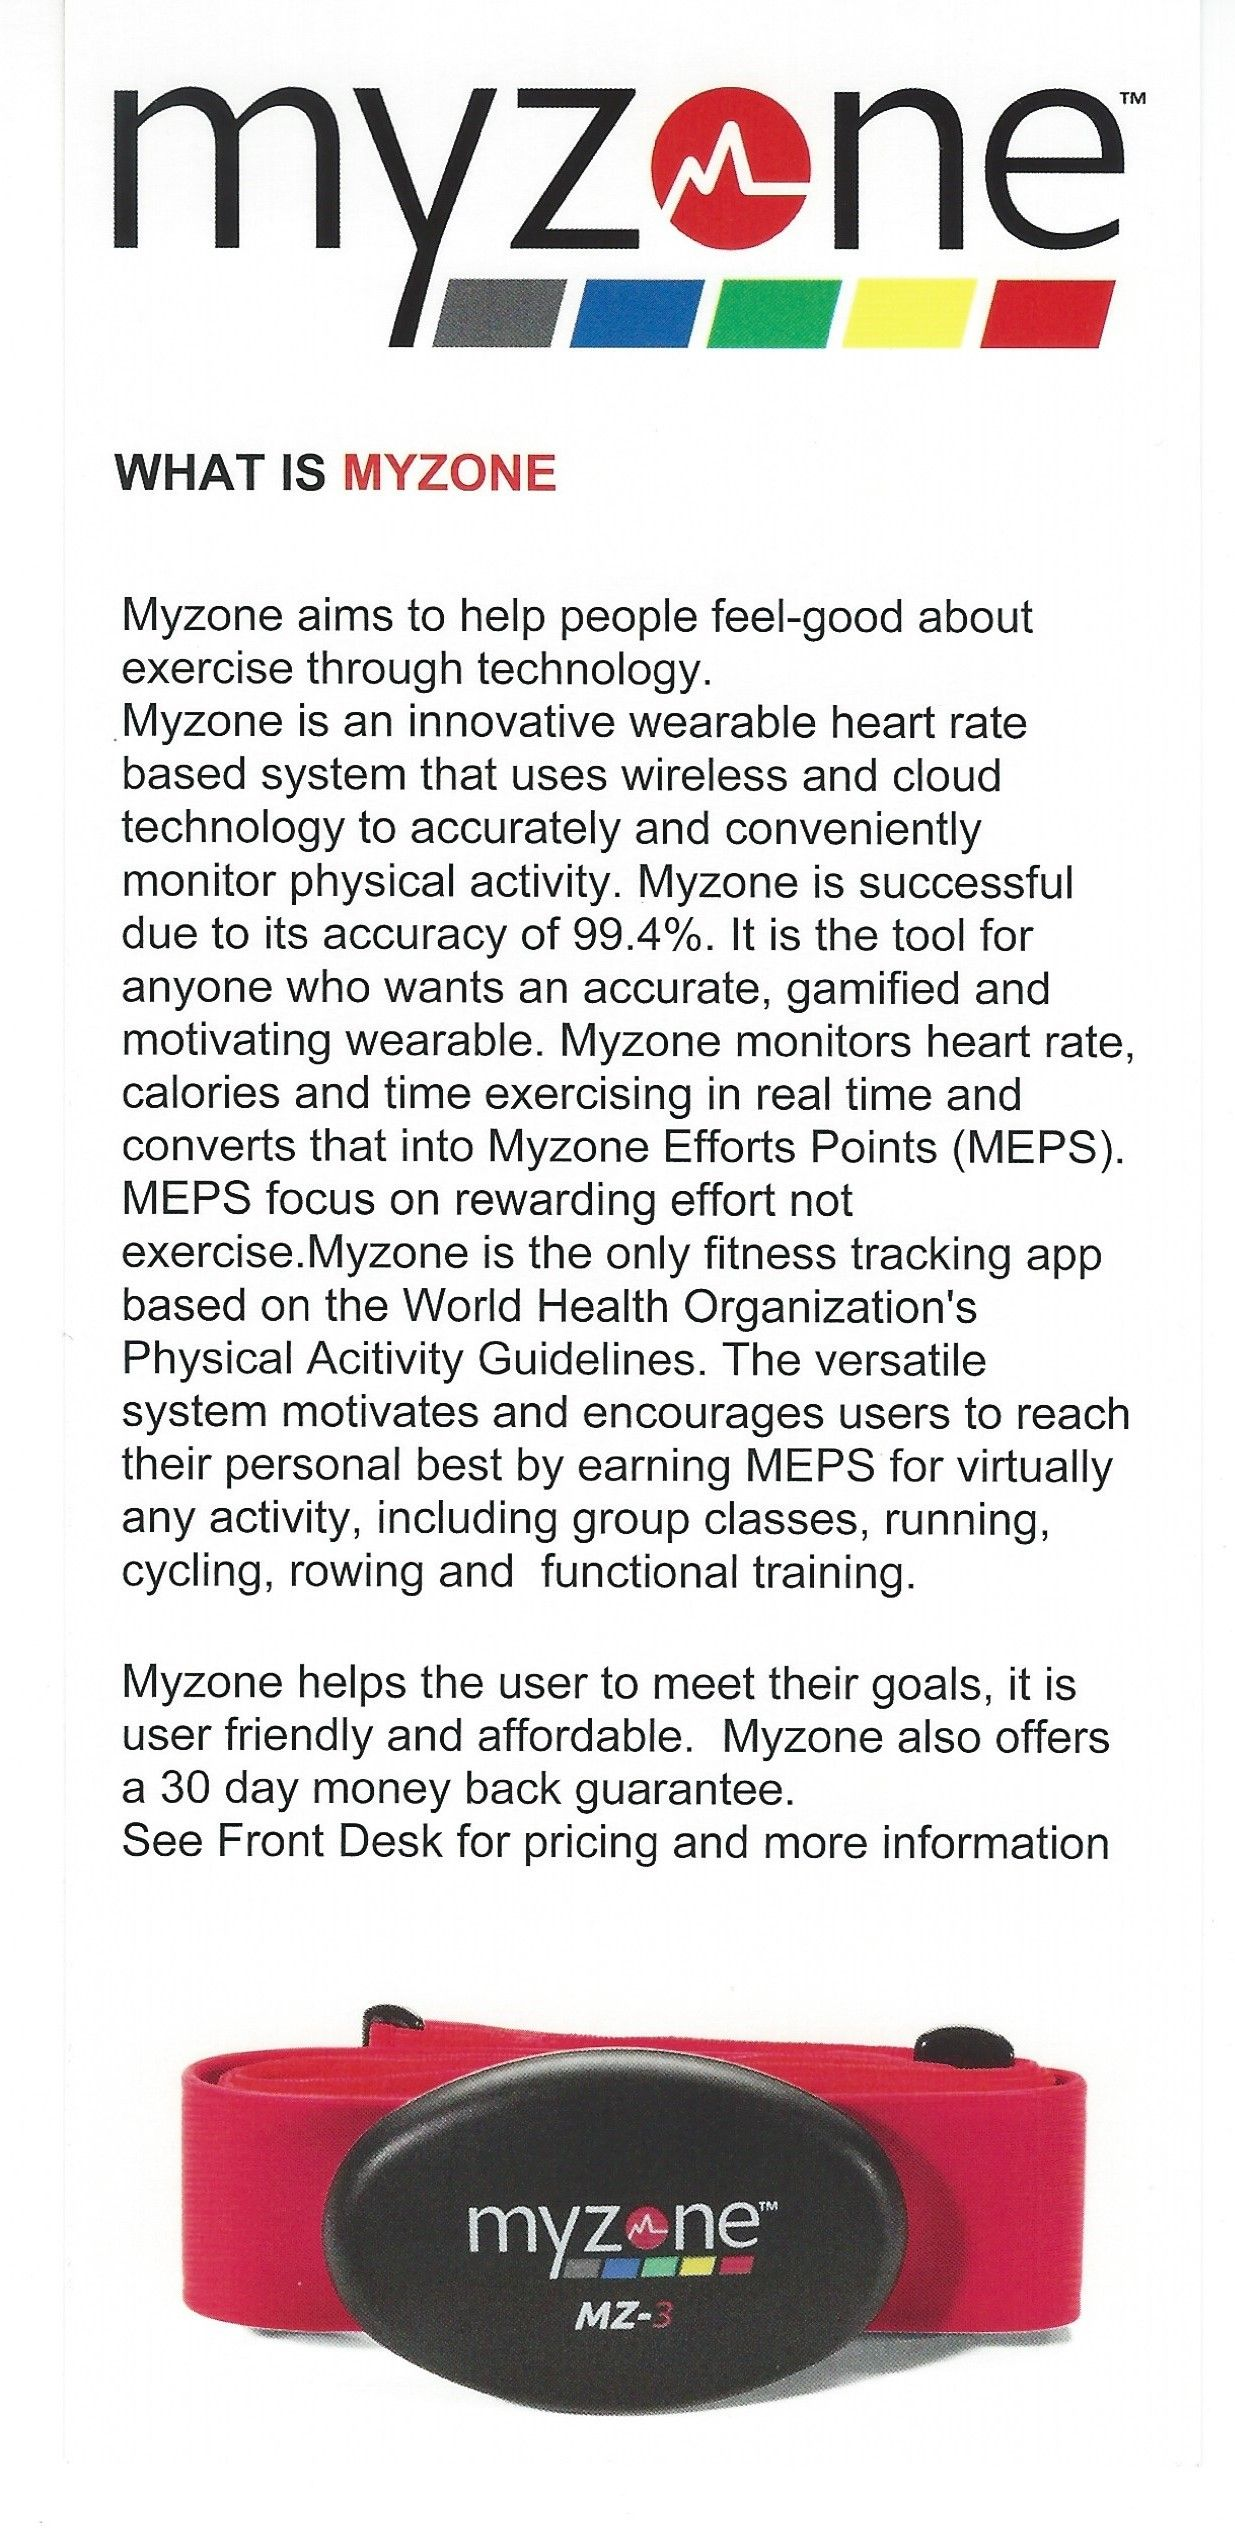 Some information about the MYZONE Belts that we use at the